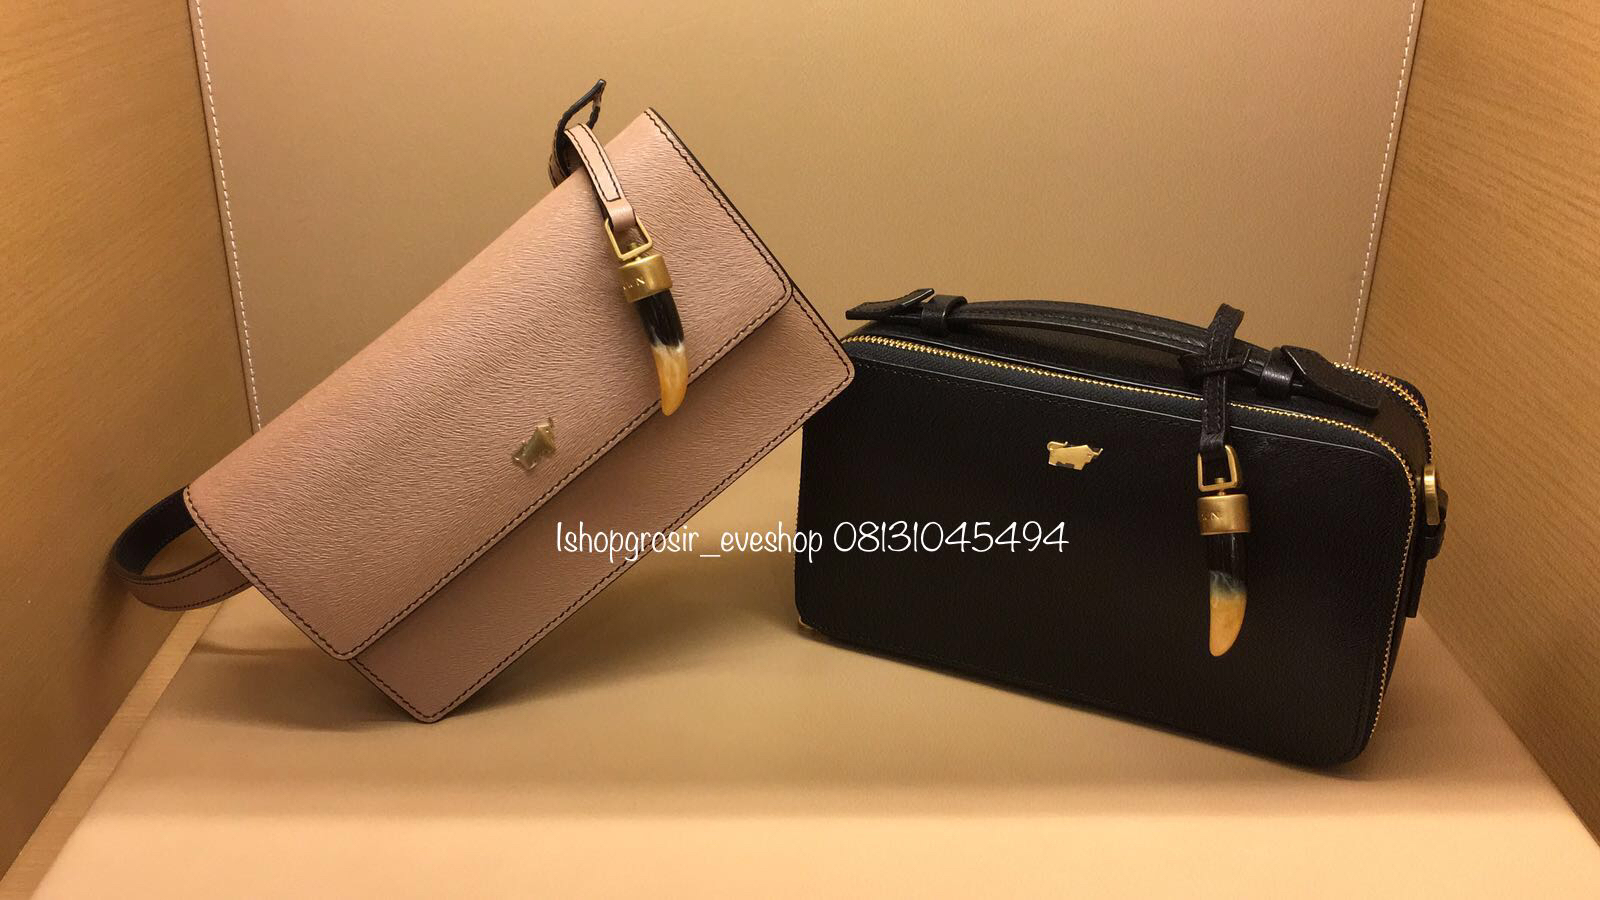 9fb5fbffe748 Braun Buffel Handbags New Arrival - Handbag Photos Eleventyone.Org